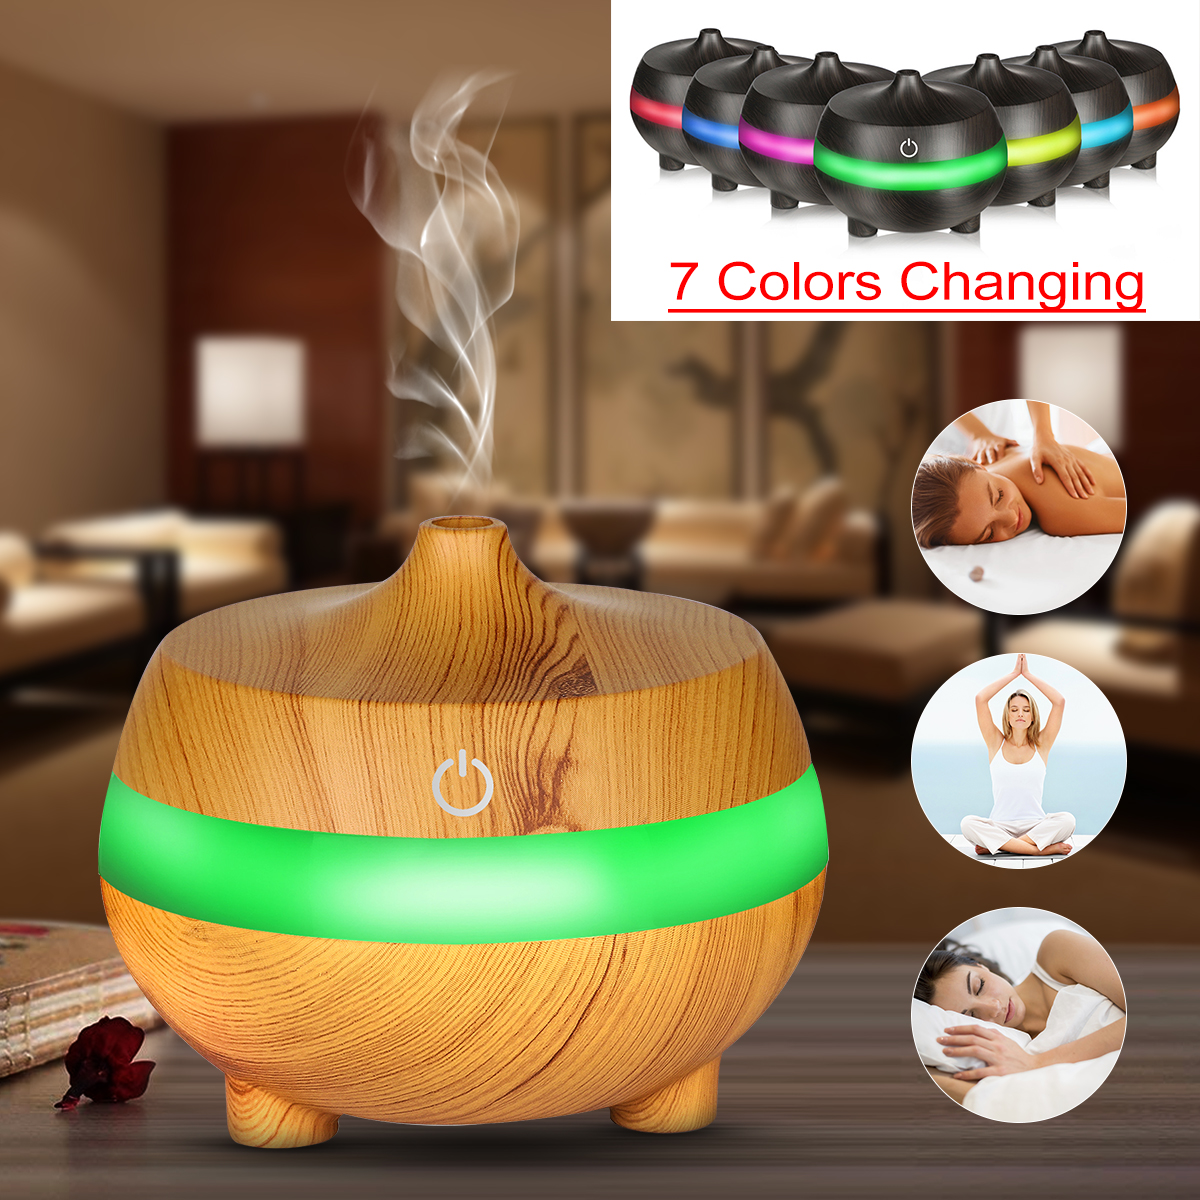 300ml Essential Oil Diffuser Air Humidifier with 7 Color Lights USB Aromatherapy Diffuser with Auto Shut-off Function Cool Mist Humidifier